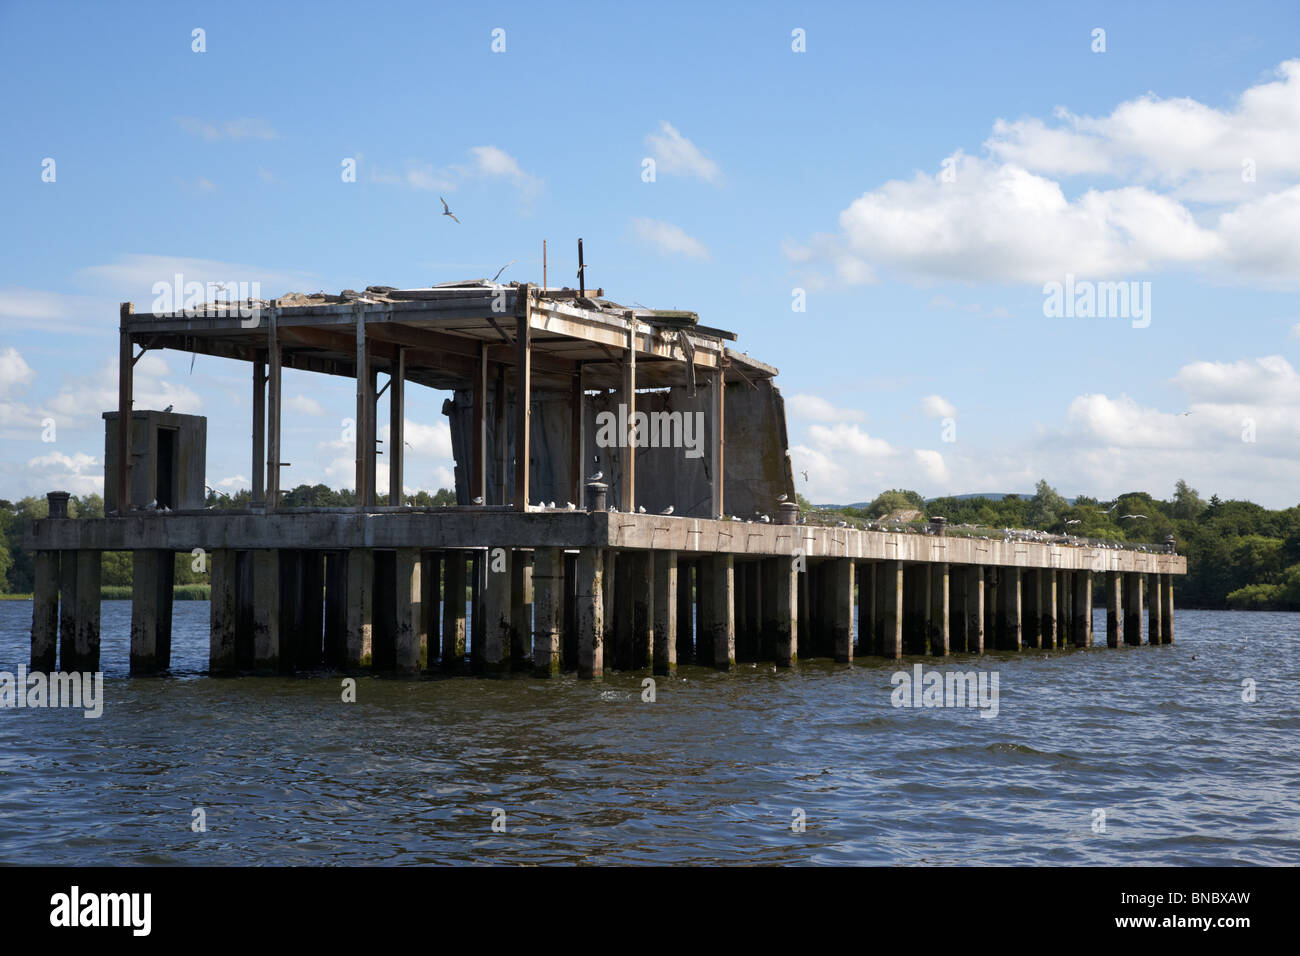 former world war 2 II torpedo production testing station now a common tern colony nature reserve on lough neagh - Stock Image